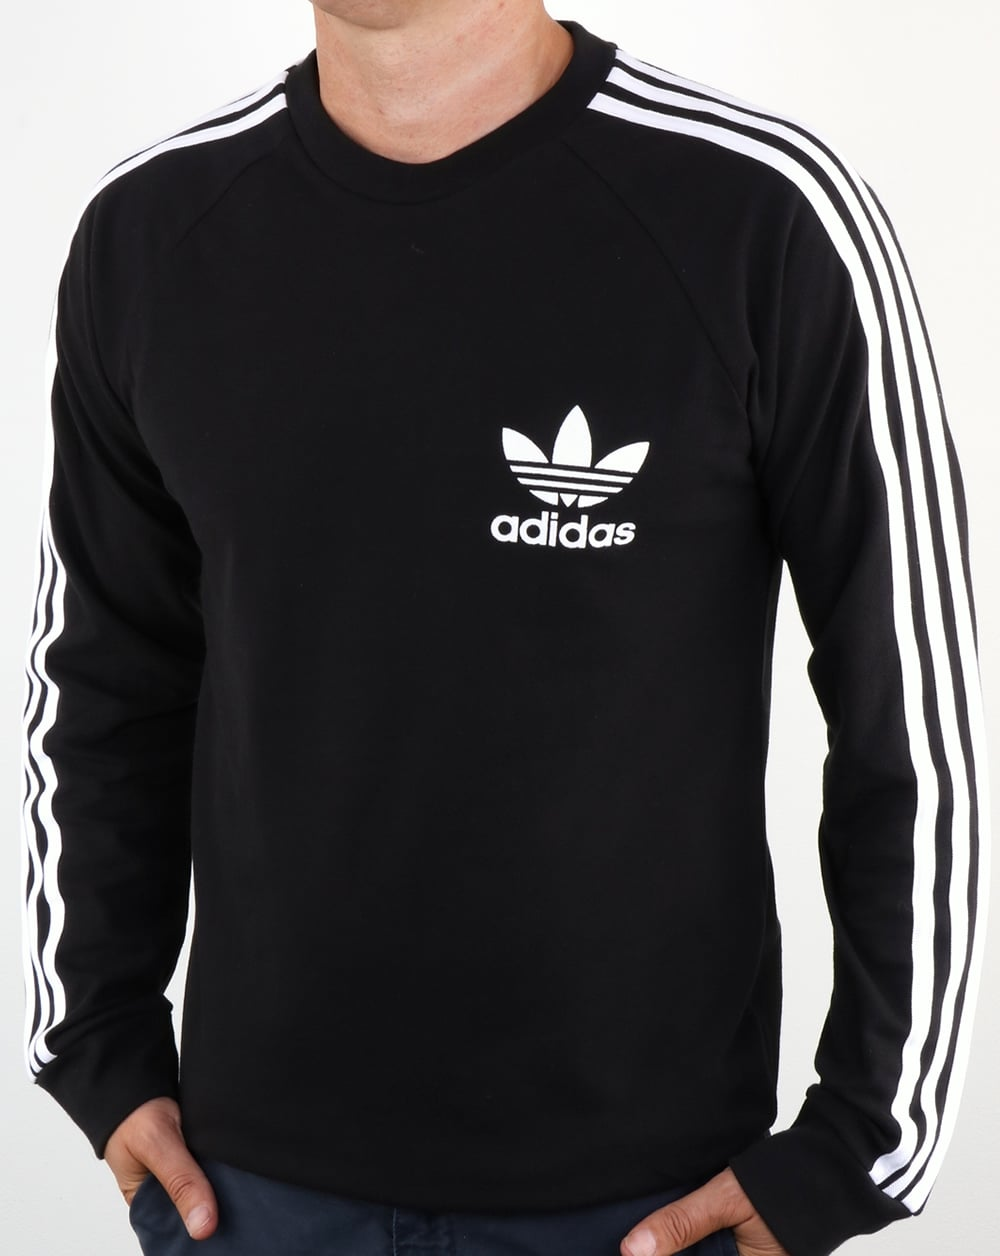 Adidas originals long sleeve pique t shirt black tee mens for What is a long sleeve t shirt